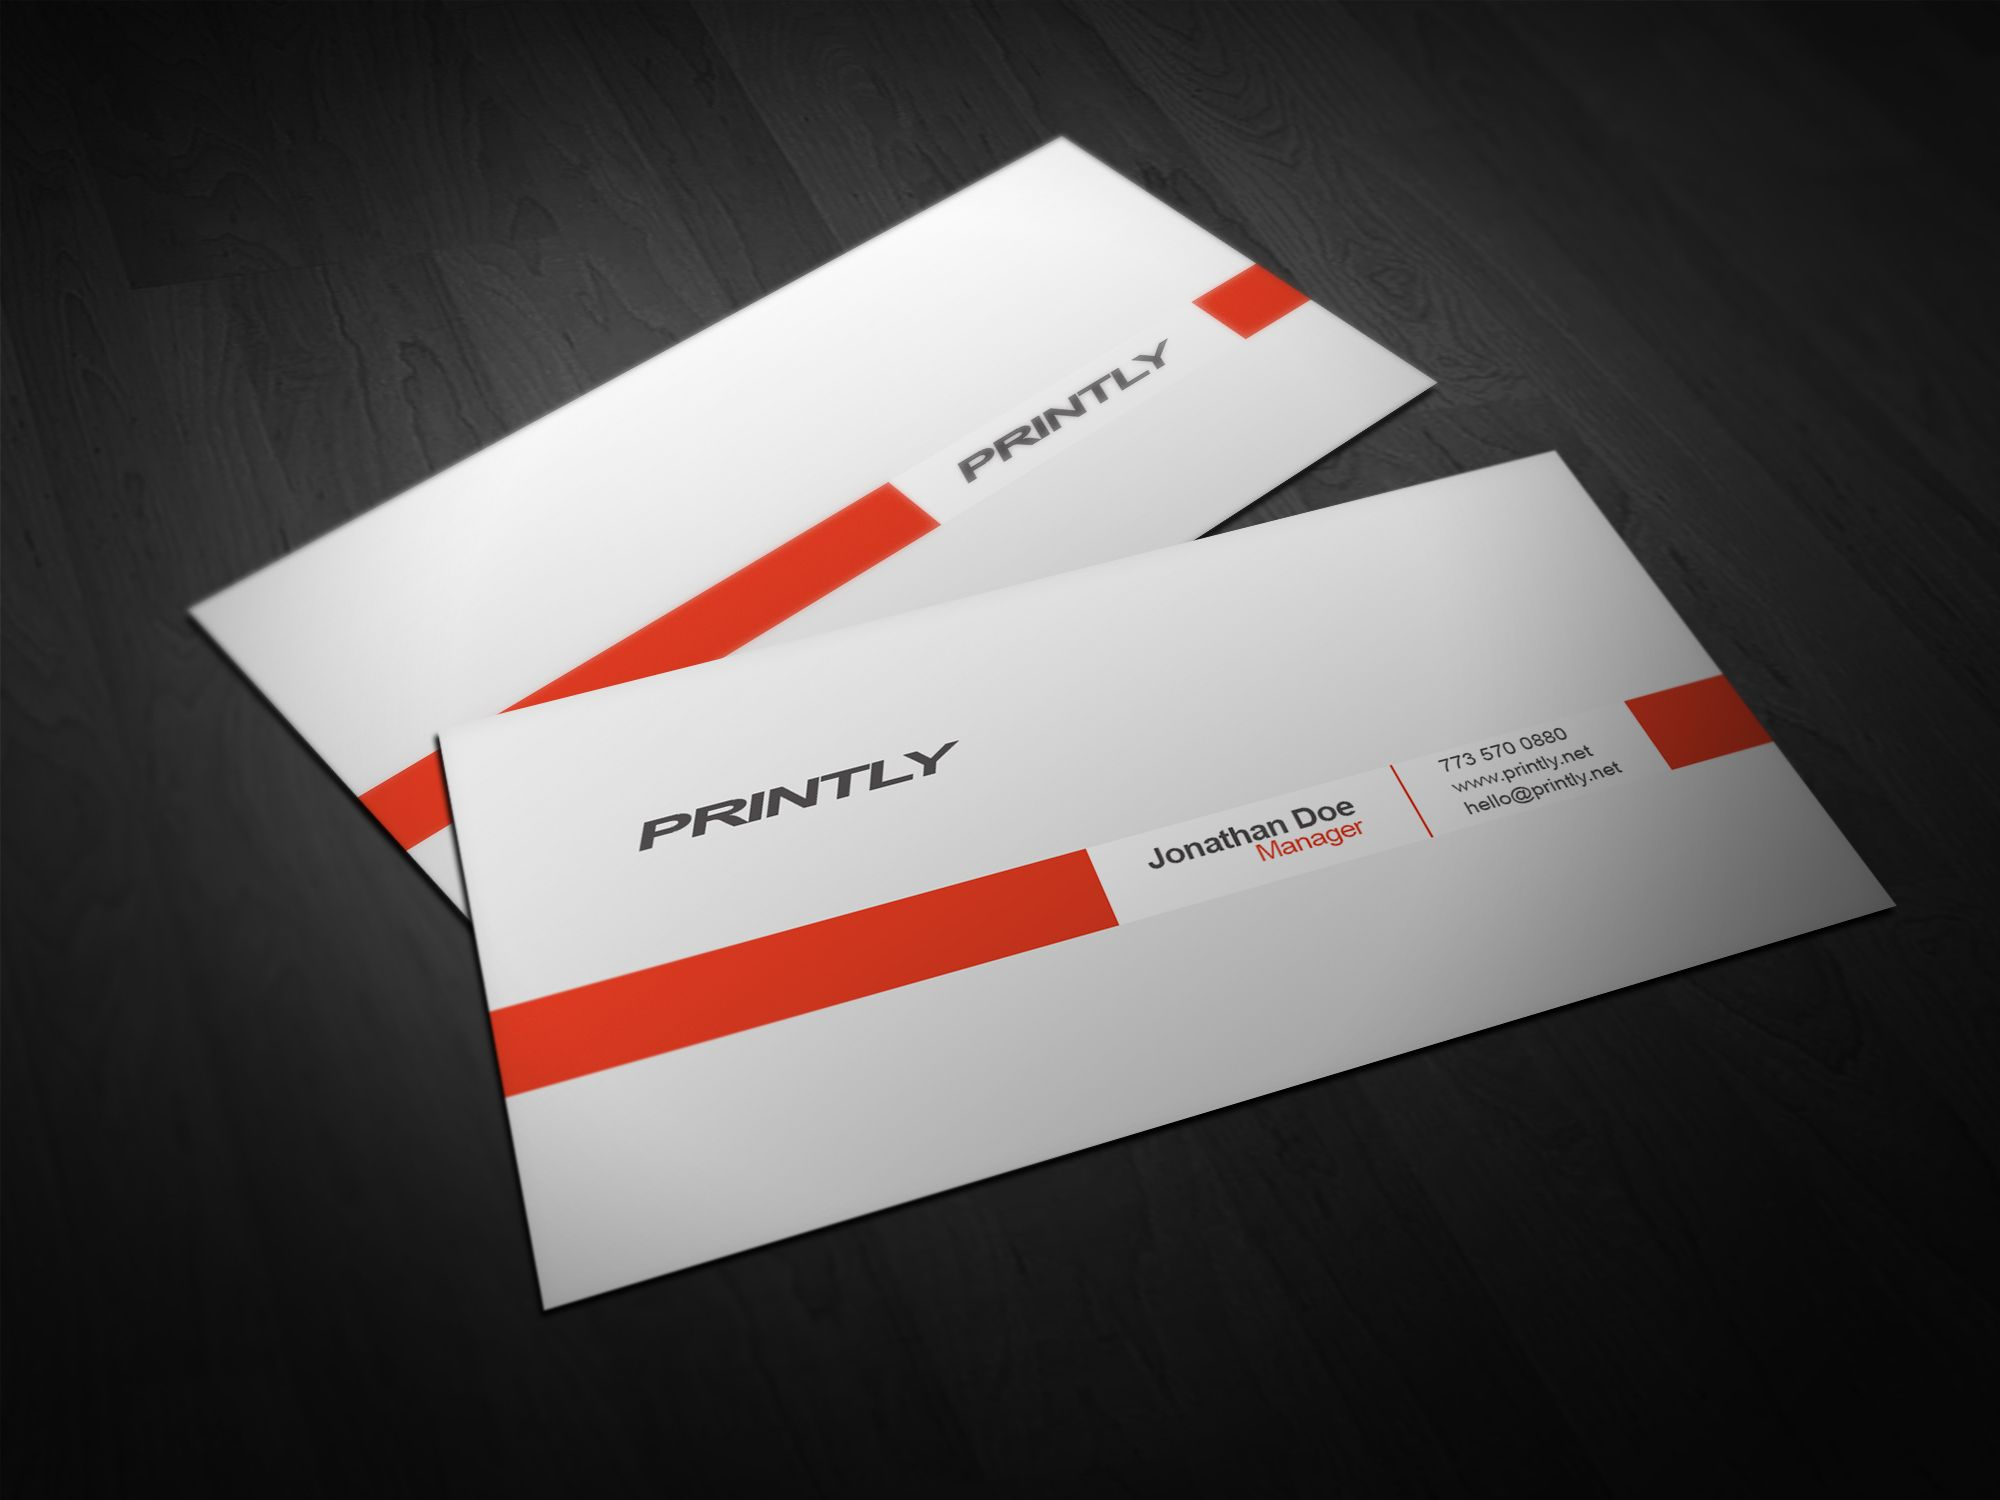 Free Printly PSD Business Card Template PRINTLY Design - Business card templates psd free download